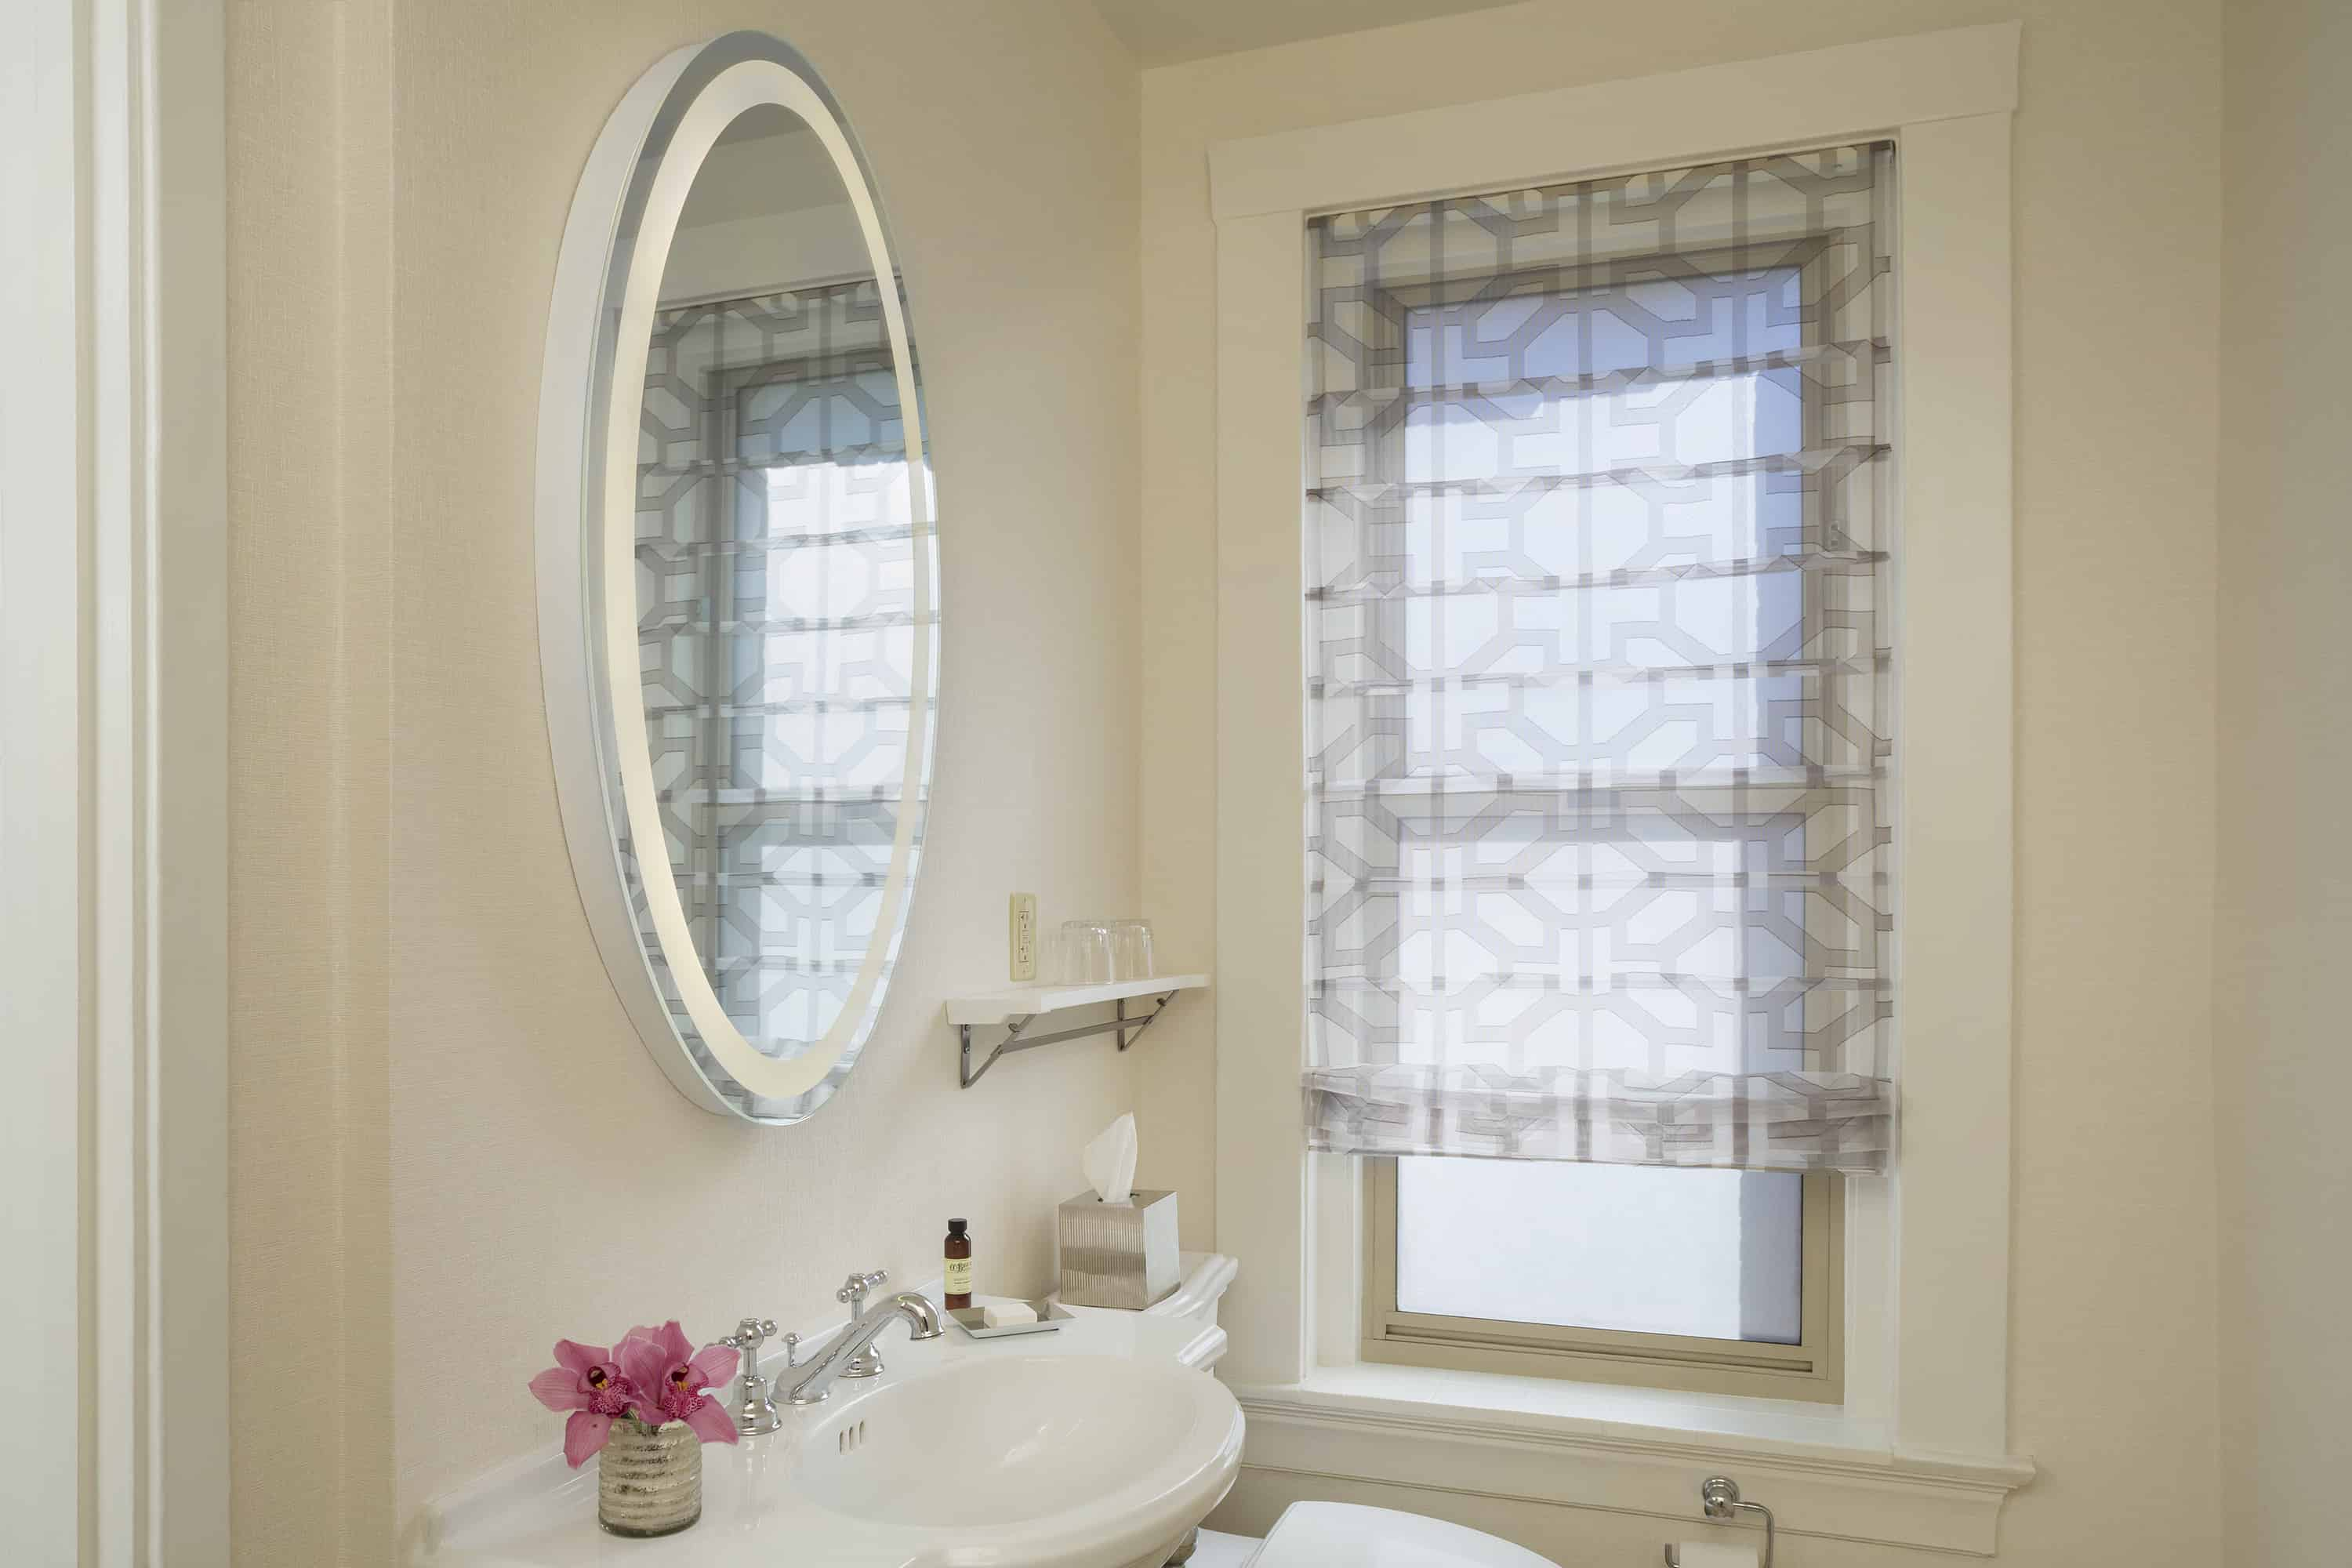 Guest room bathroom detail with lighted mirror and window.